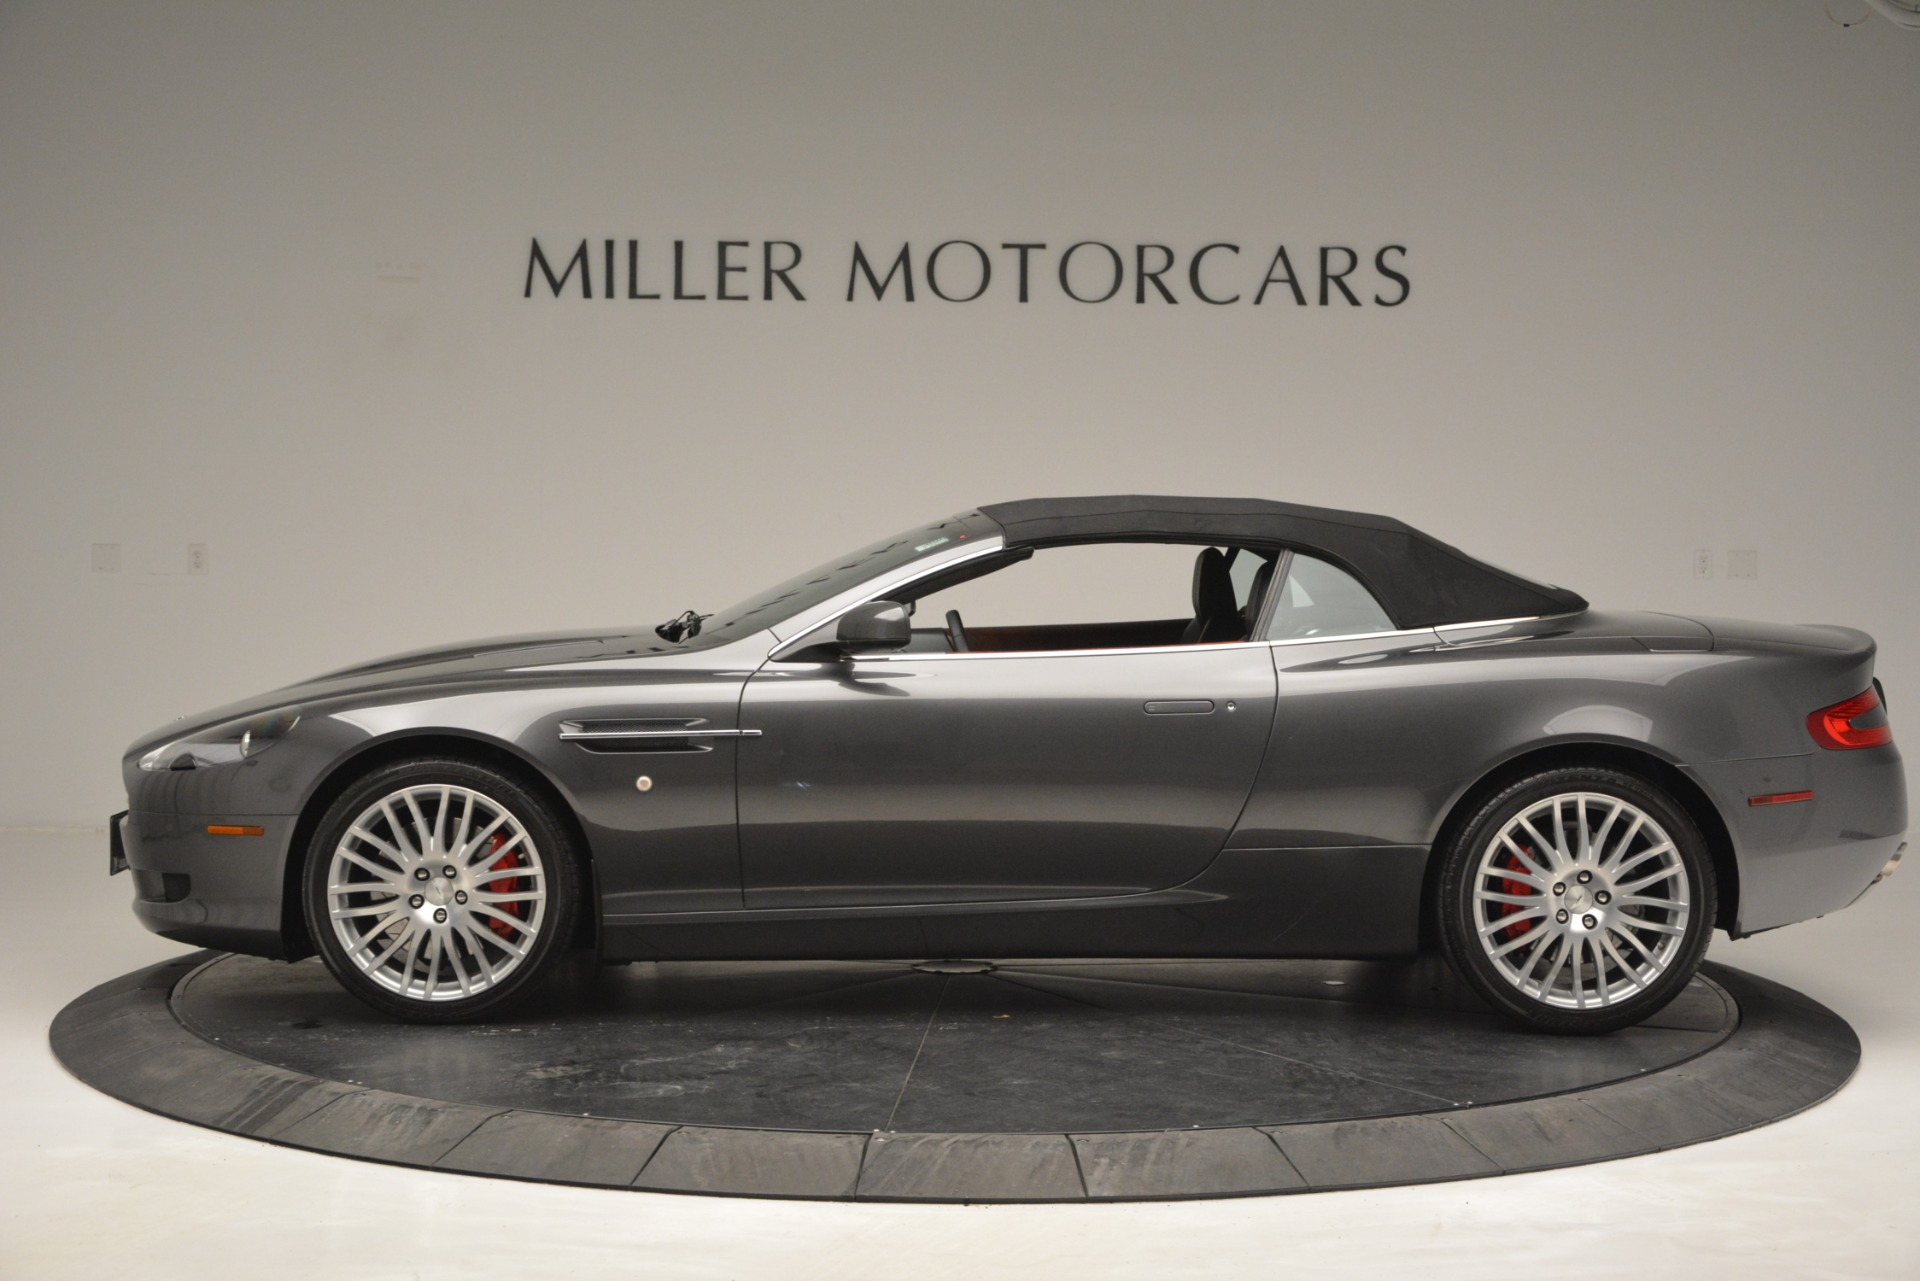 Used 2009 Aston Martin DB9 Convertible For Sale In Westport, CT 2930_p19